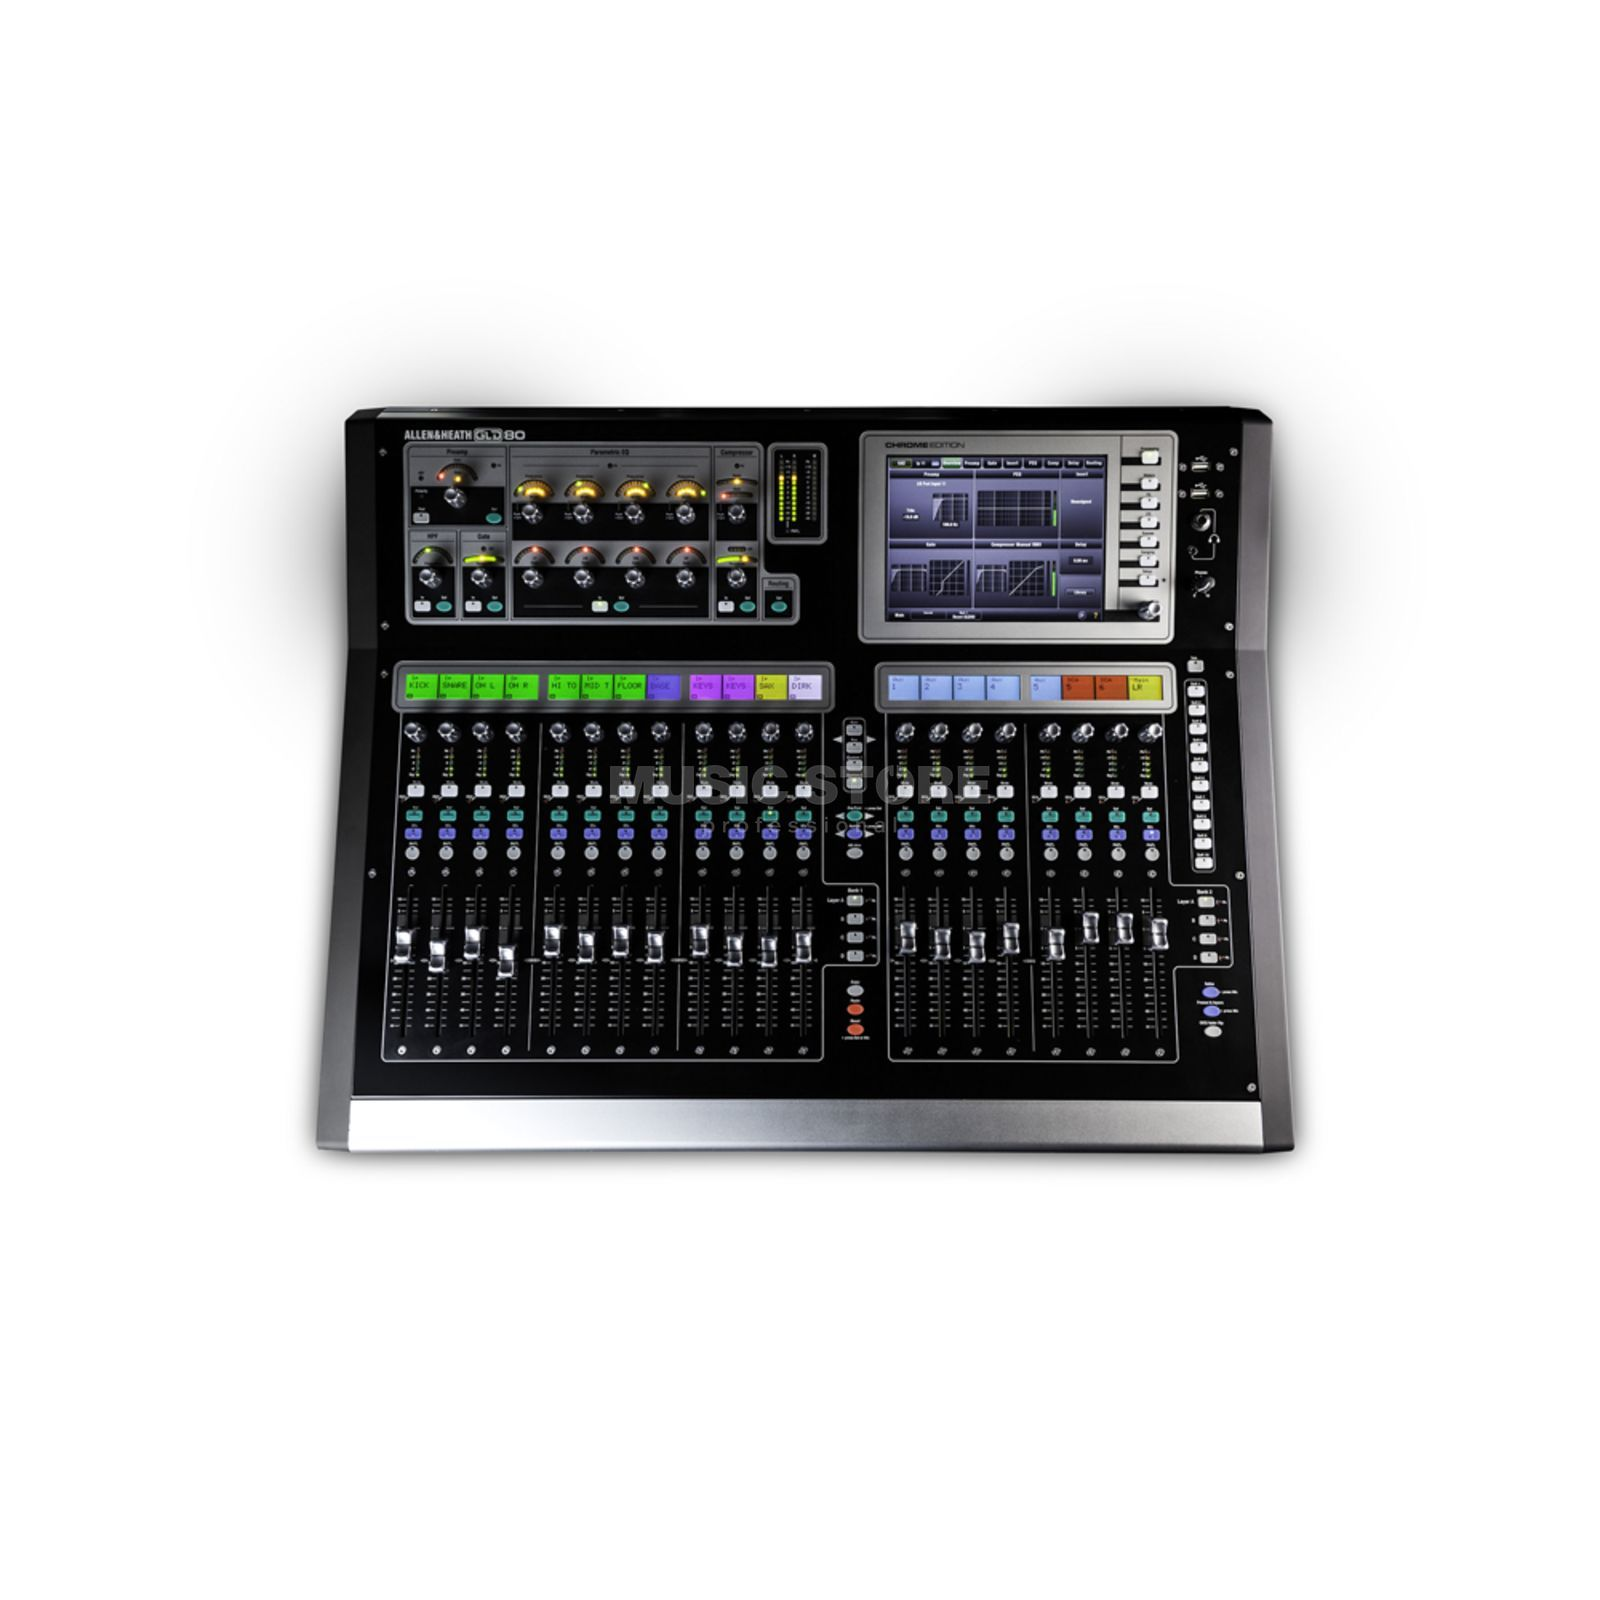 Allen & Heath GLD-80 Digital Mixer Chrome 30 Busse, 8 Stereo FX Returns Produktbild